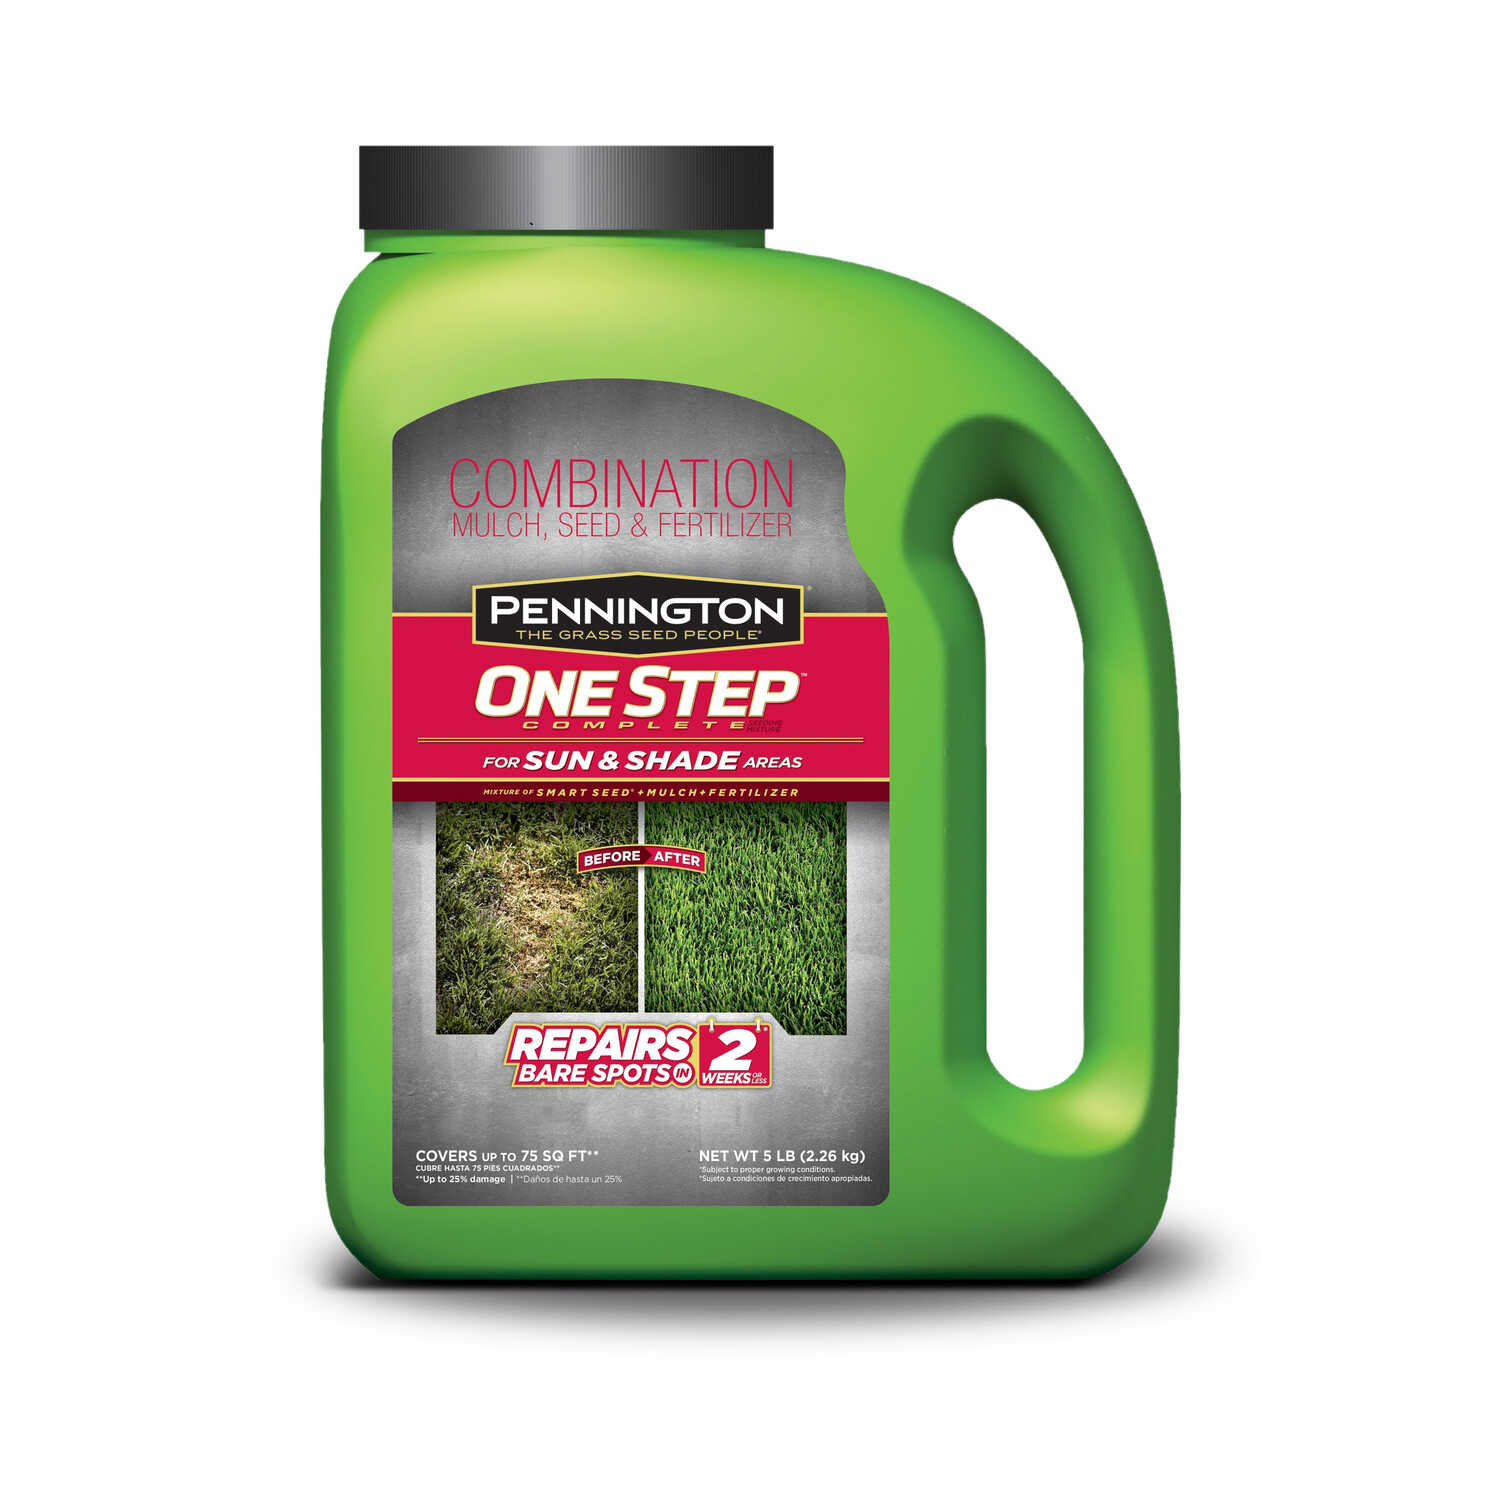 Pennington  One Step Complete  Mixed  Seed, Mulch & Fertilizer  5 lb.